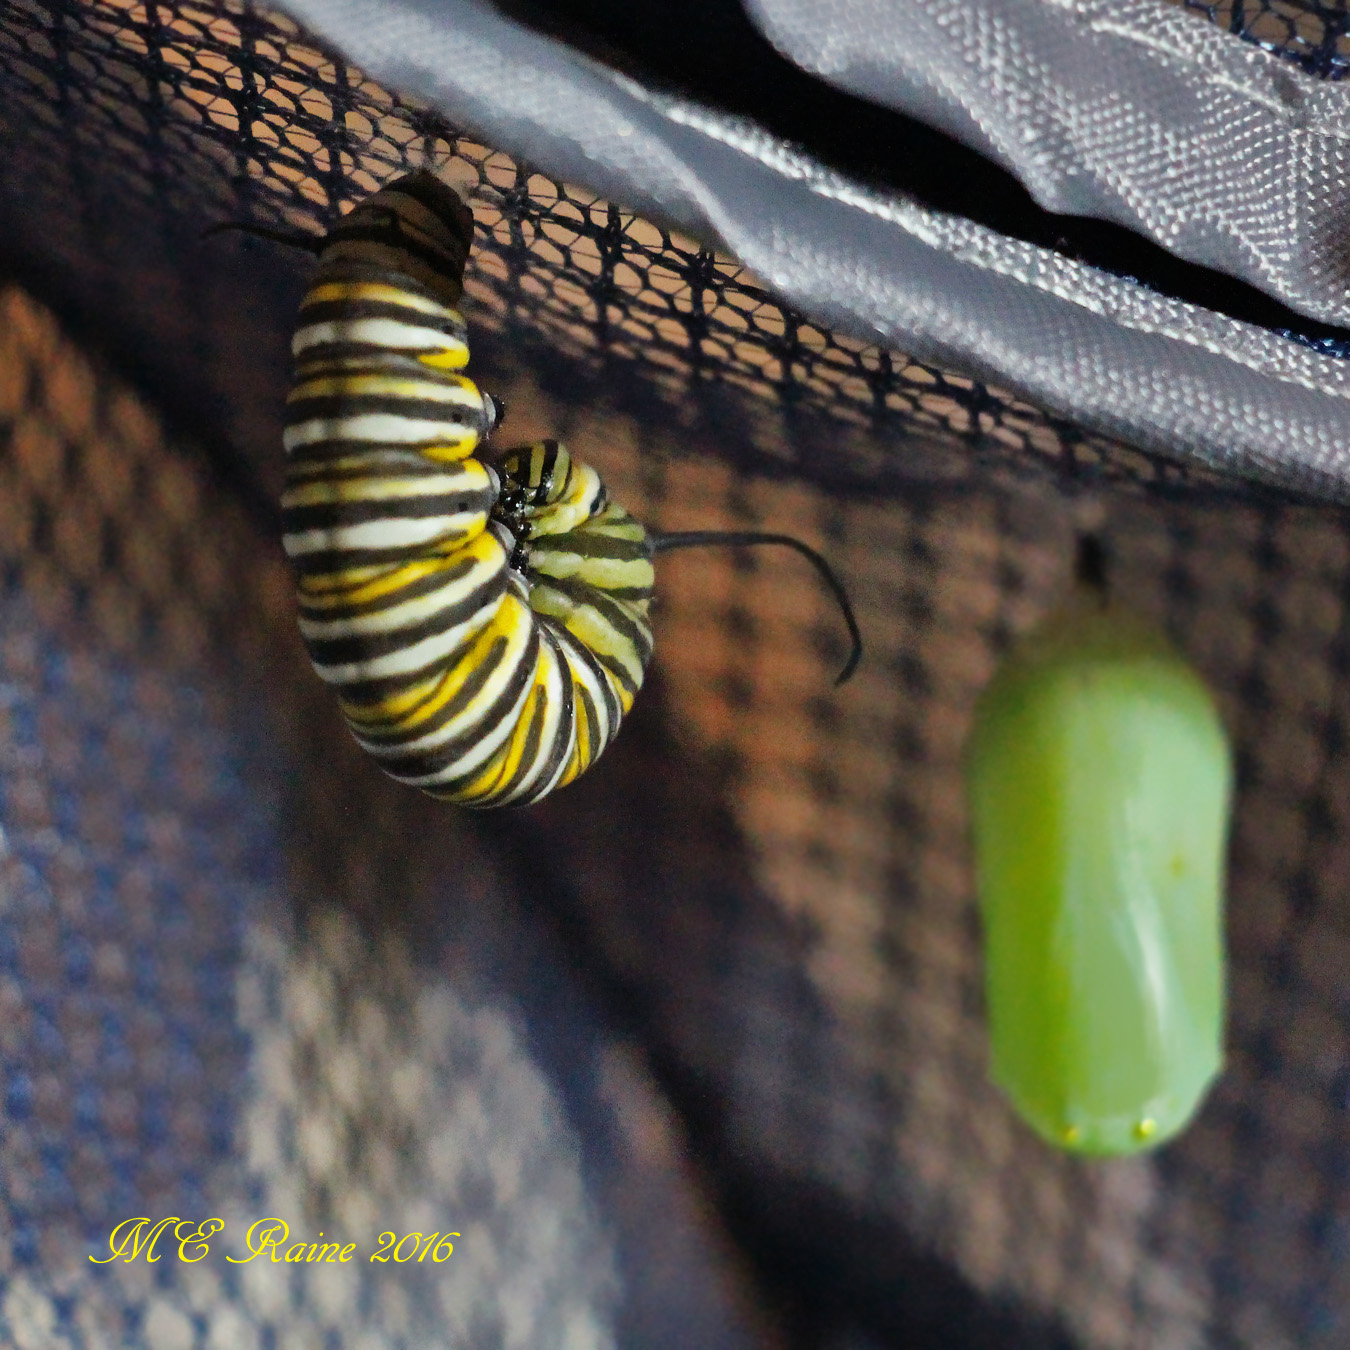 monarch-butterfly-with-chrysalsisno-2-pre-chrysalis-stage-safe-house-1-090716-near-mdnght-ok-wm-2